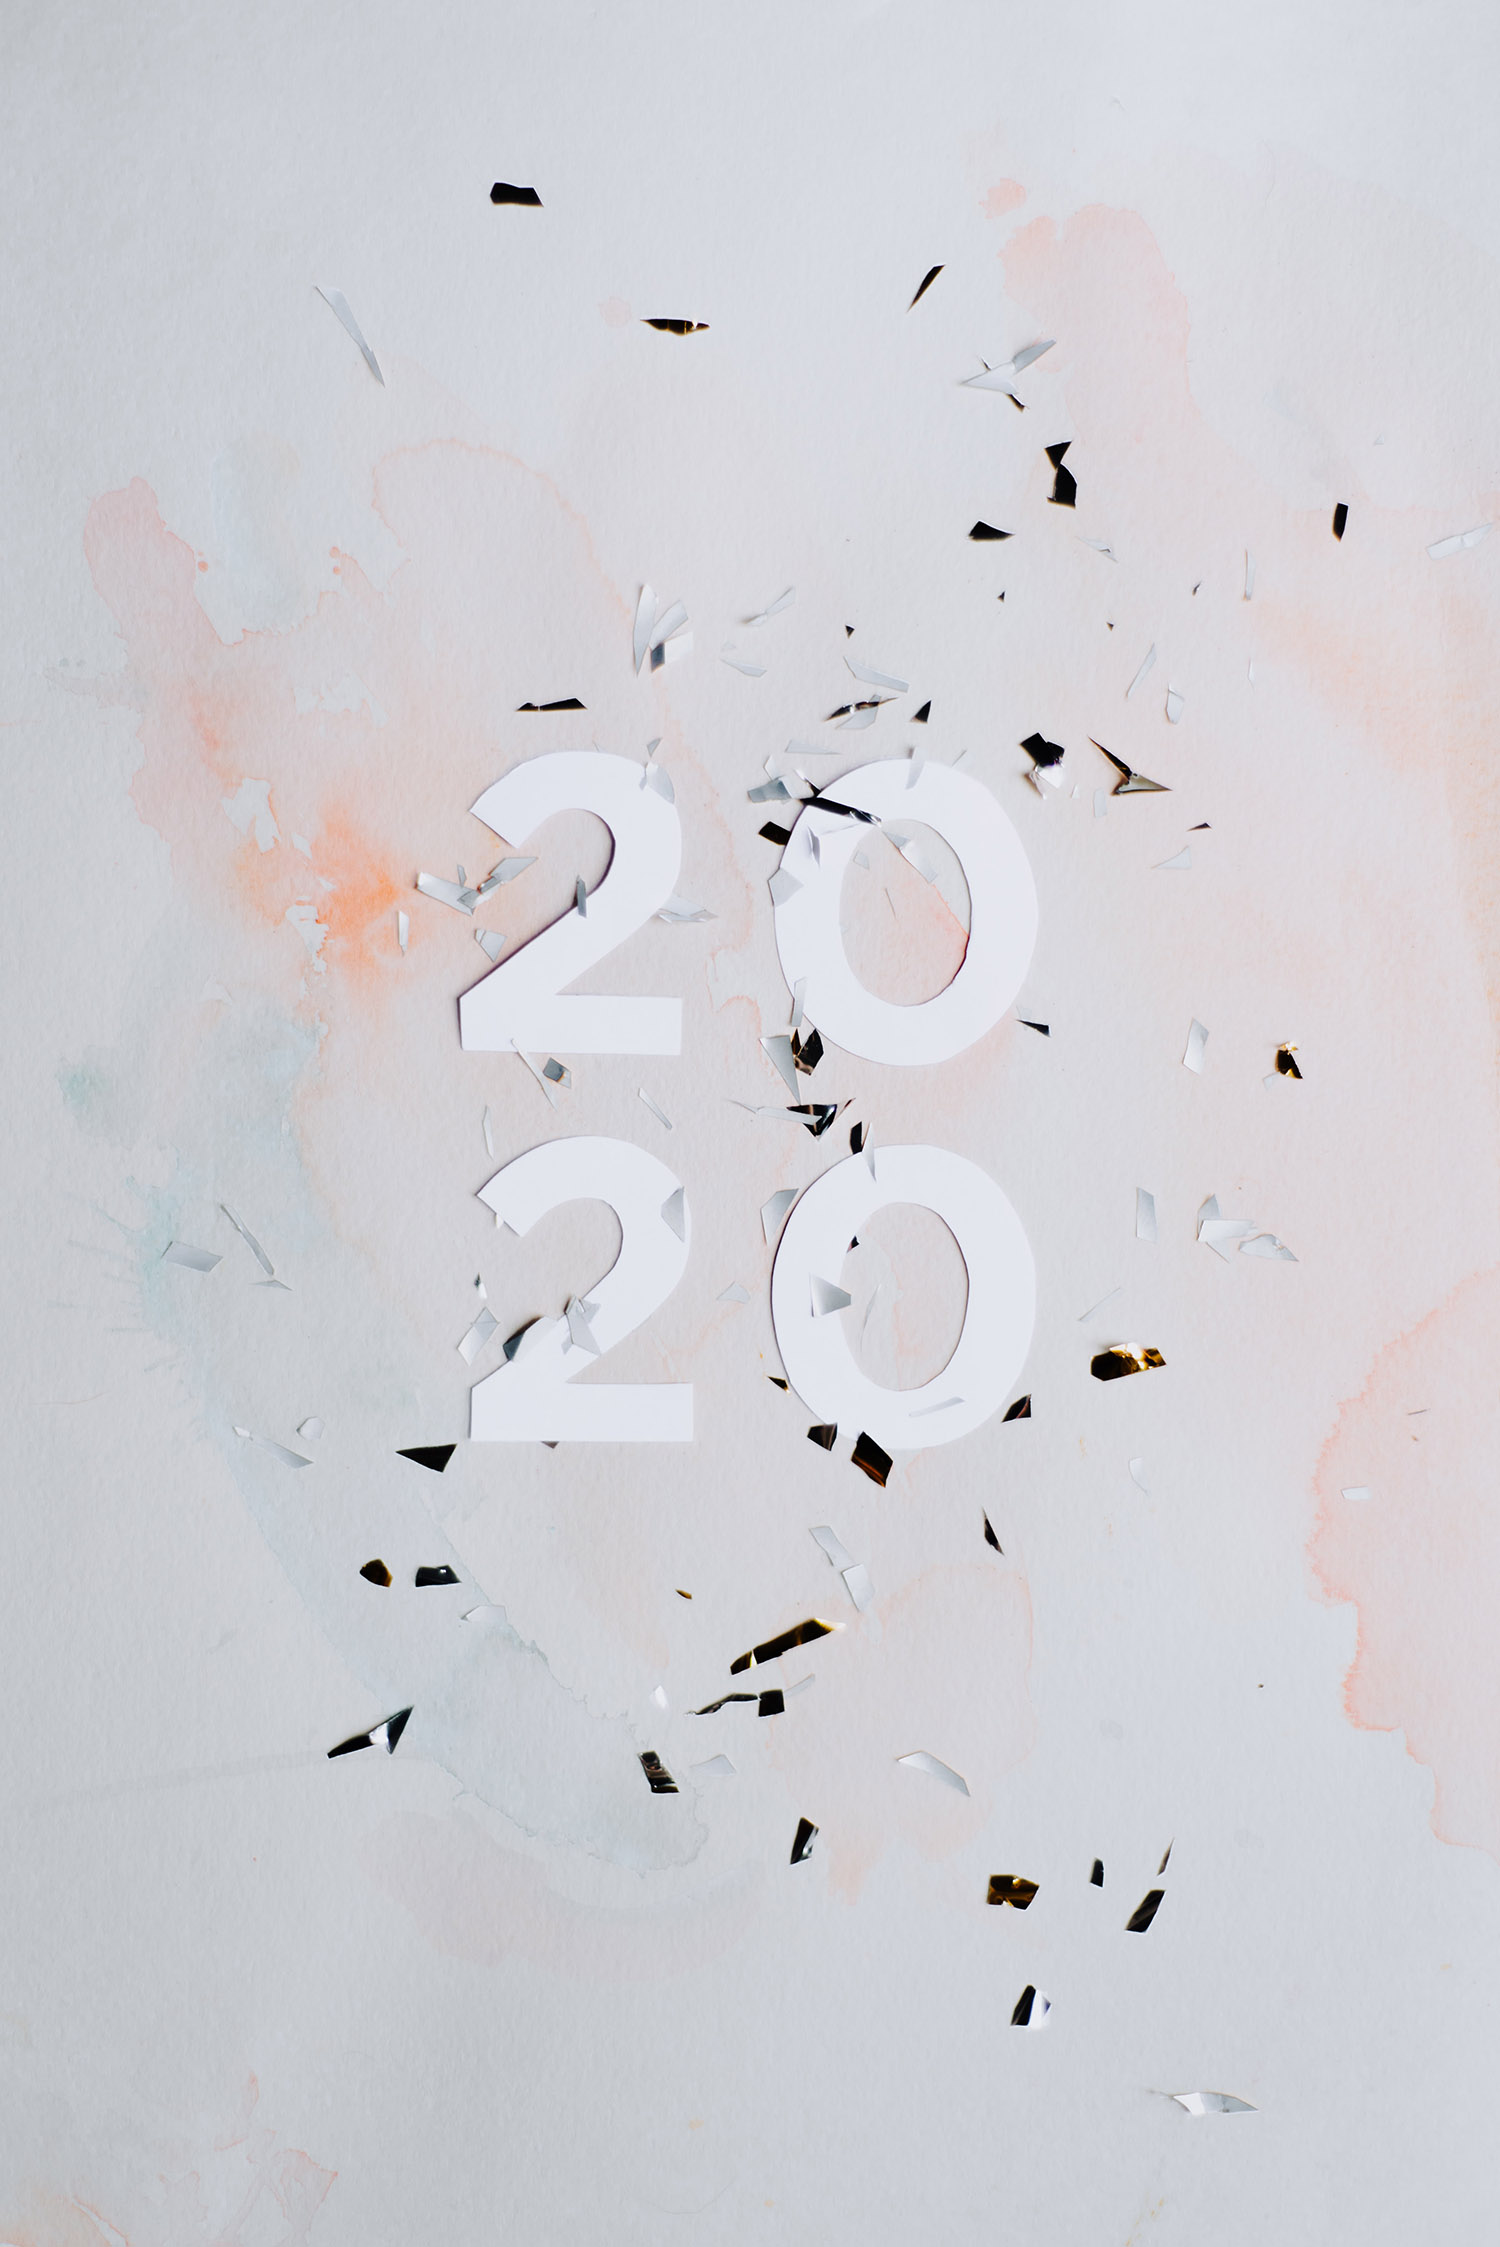 2020 Hindsight and the Trends to Watch | HE Research Snippet #38